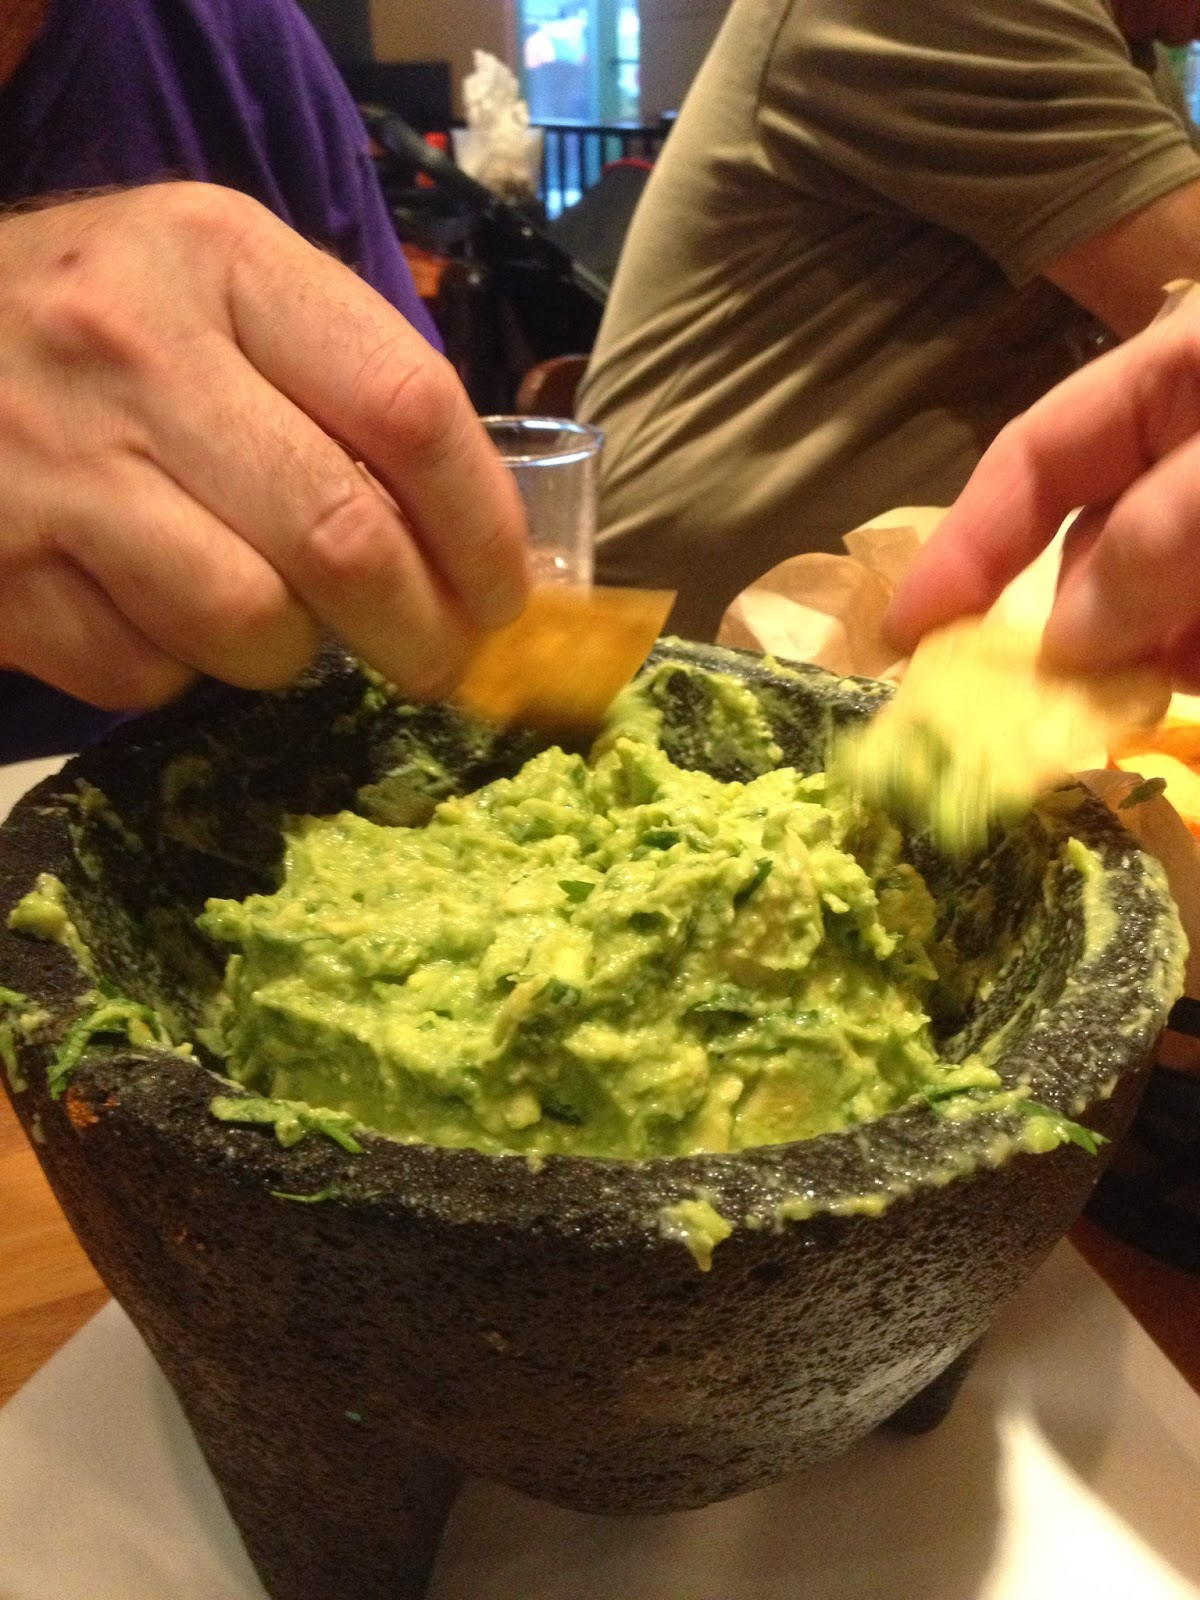 people dipping chips into guacamole at a party